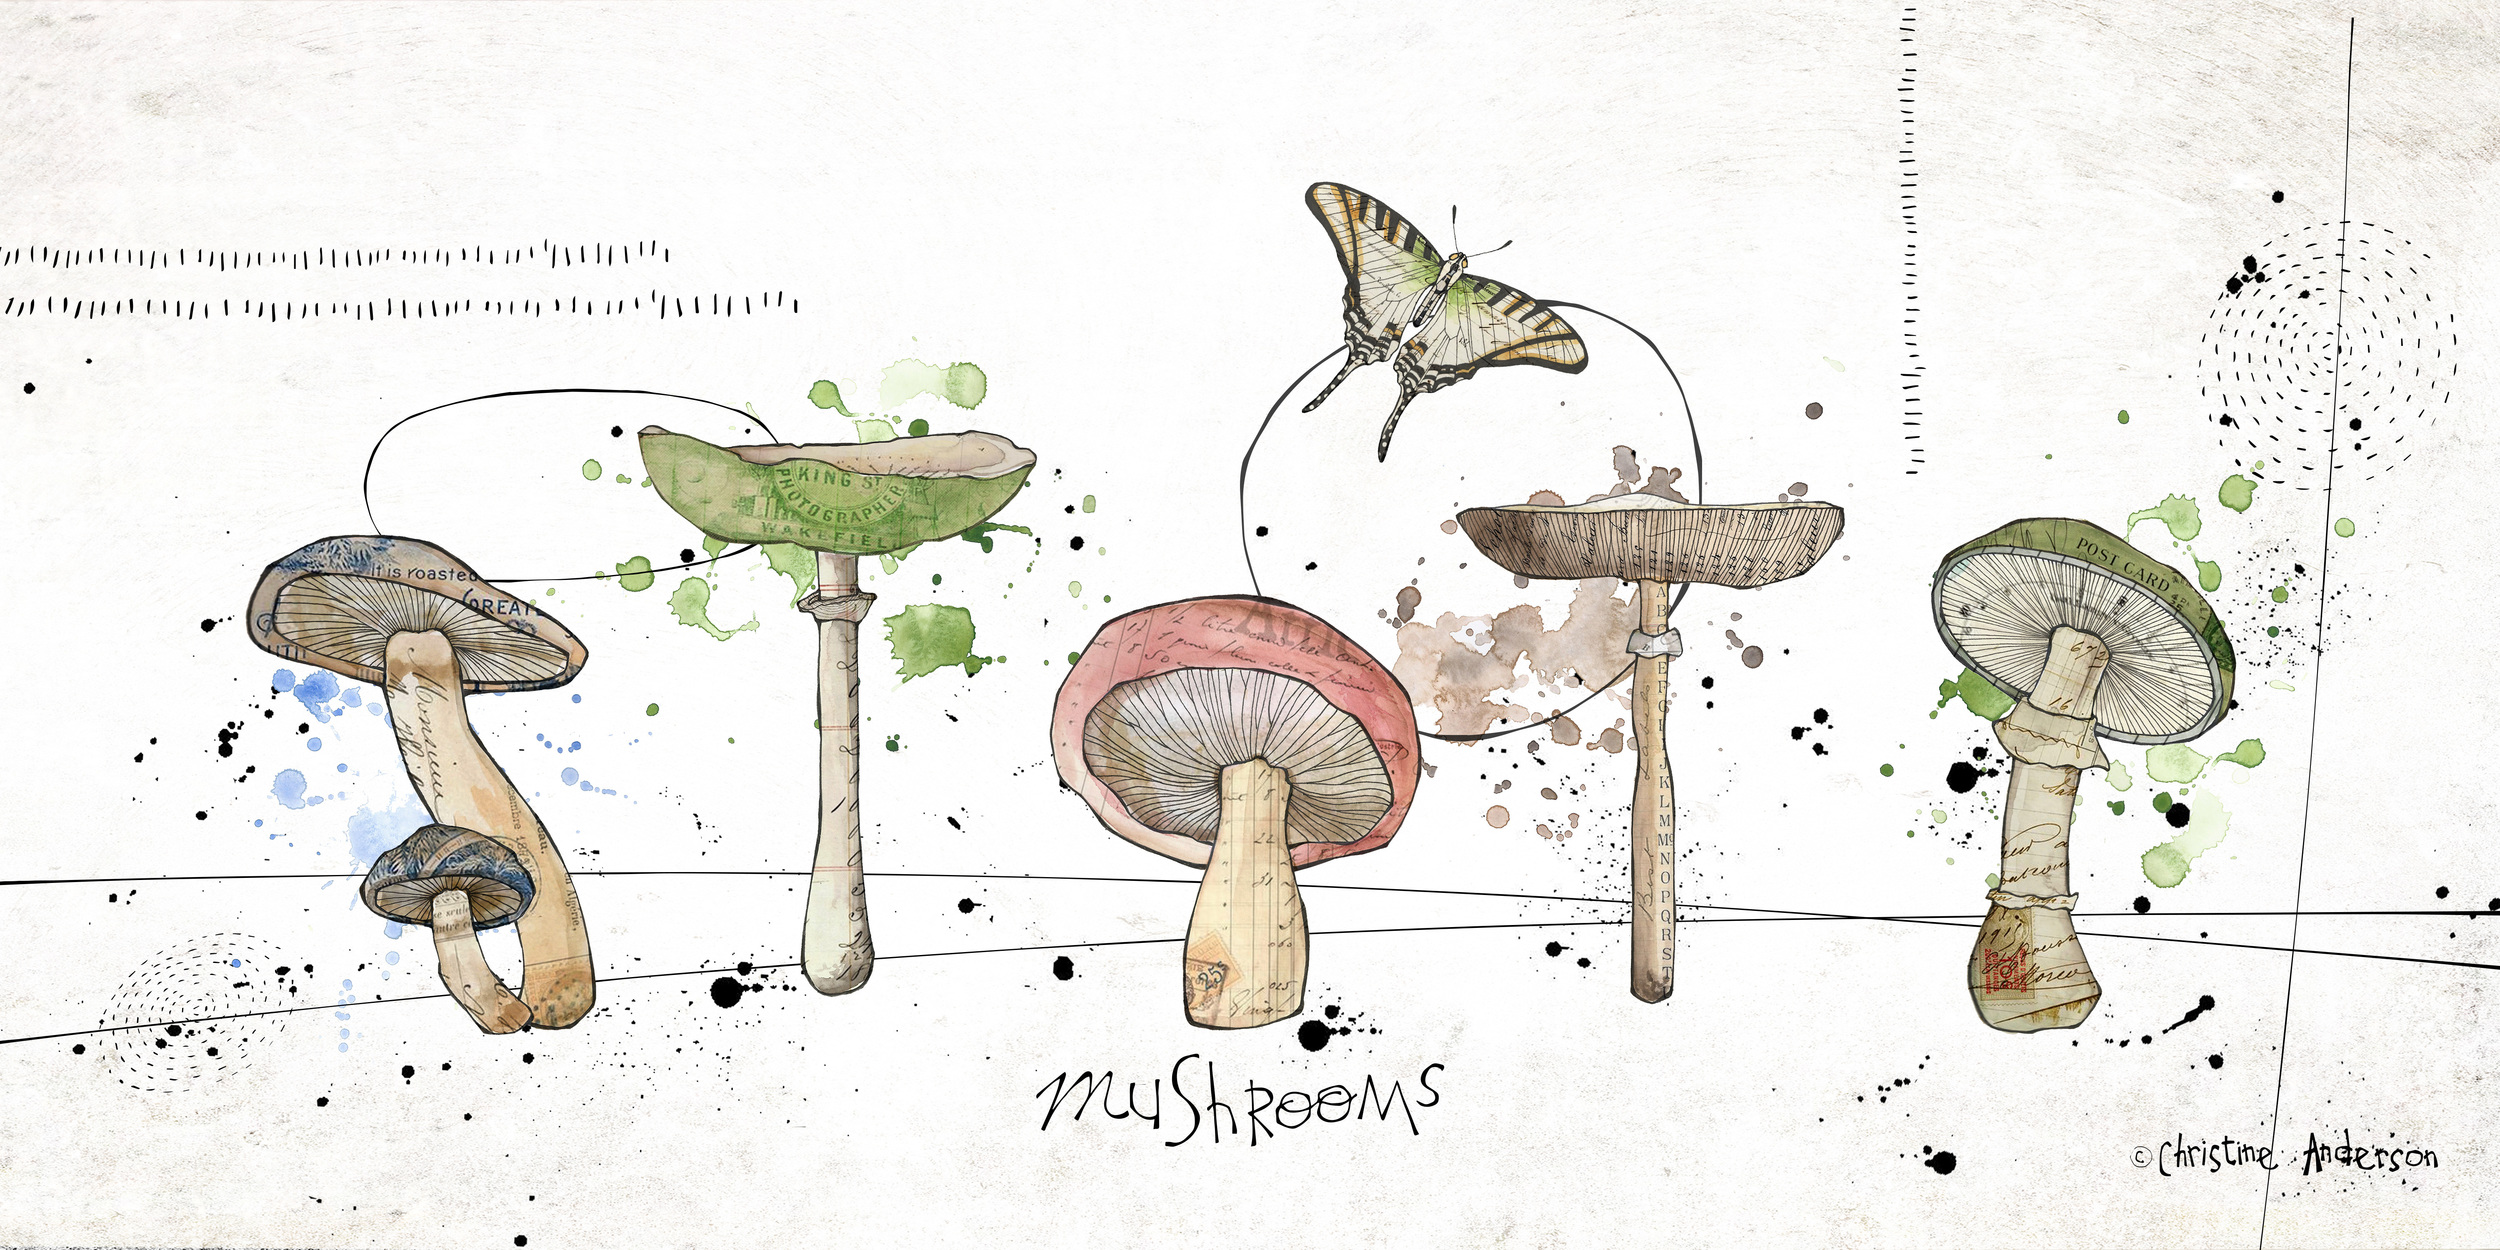 PB mushrooms 10x20 for print.jpg